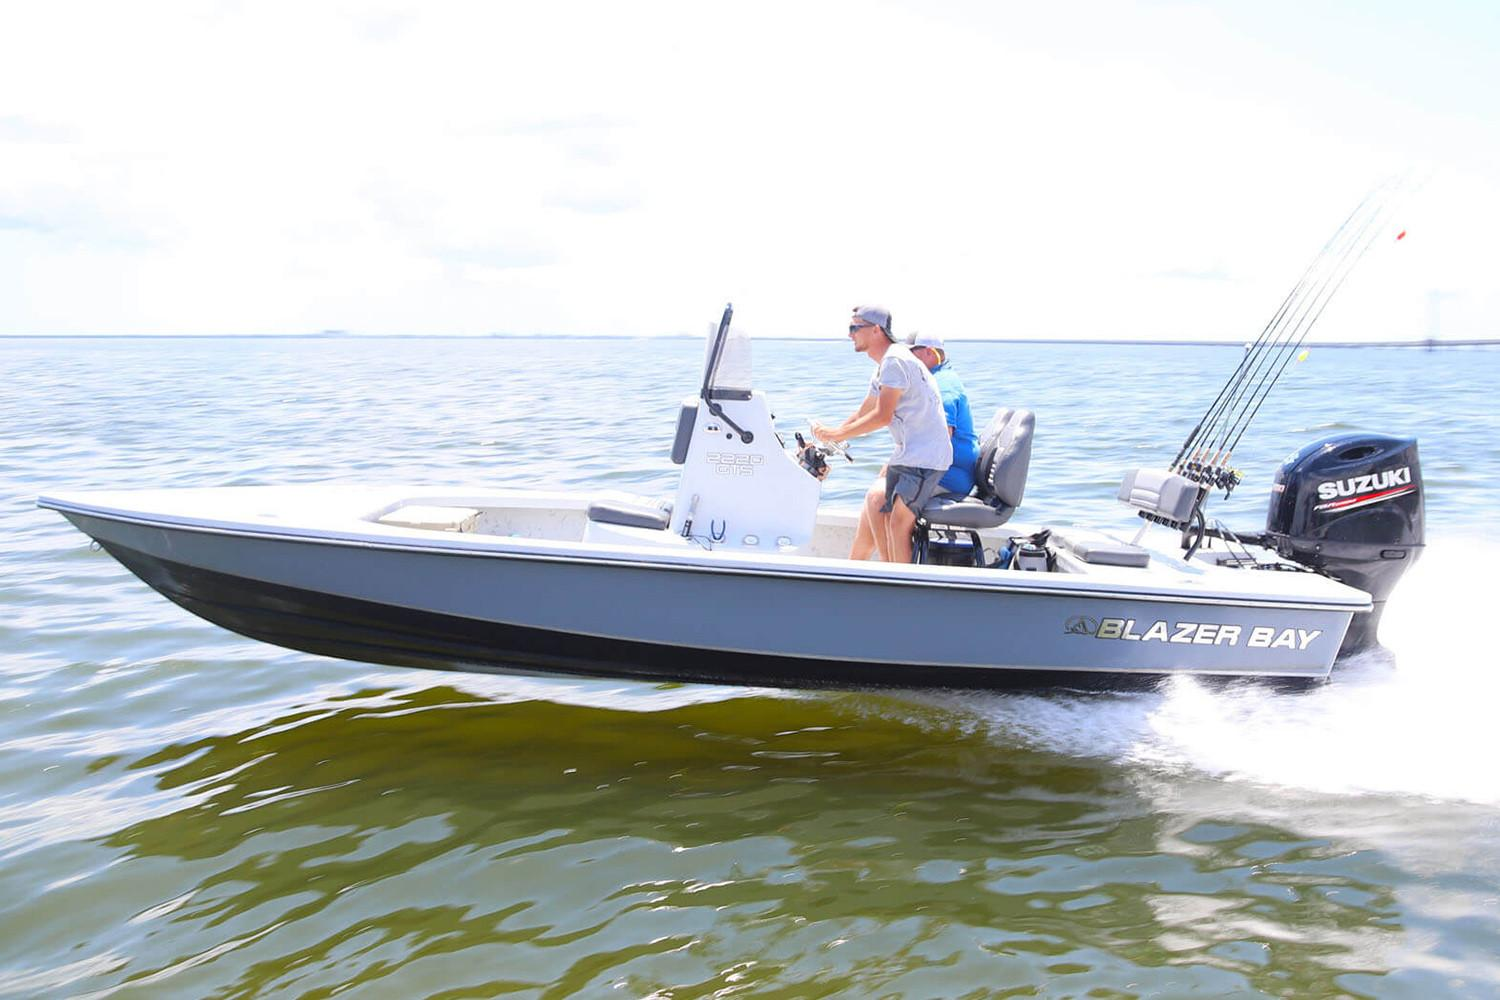 New 2019 Blazer Bay 2220 GTS Power Boats Outboard in Perry, FL